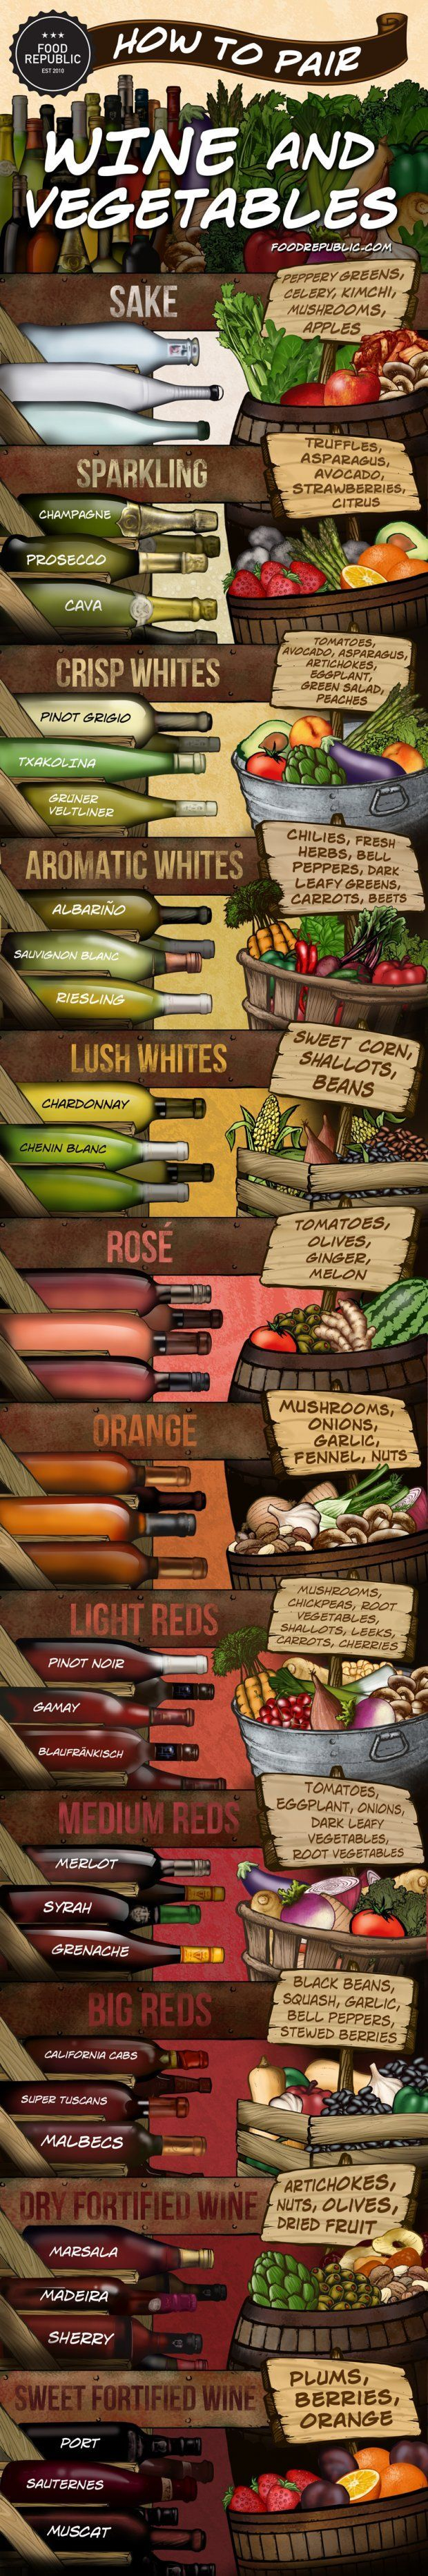 Wine Infographic: How To Pair Wine And Vegetables - Grilled of course!